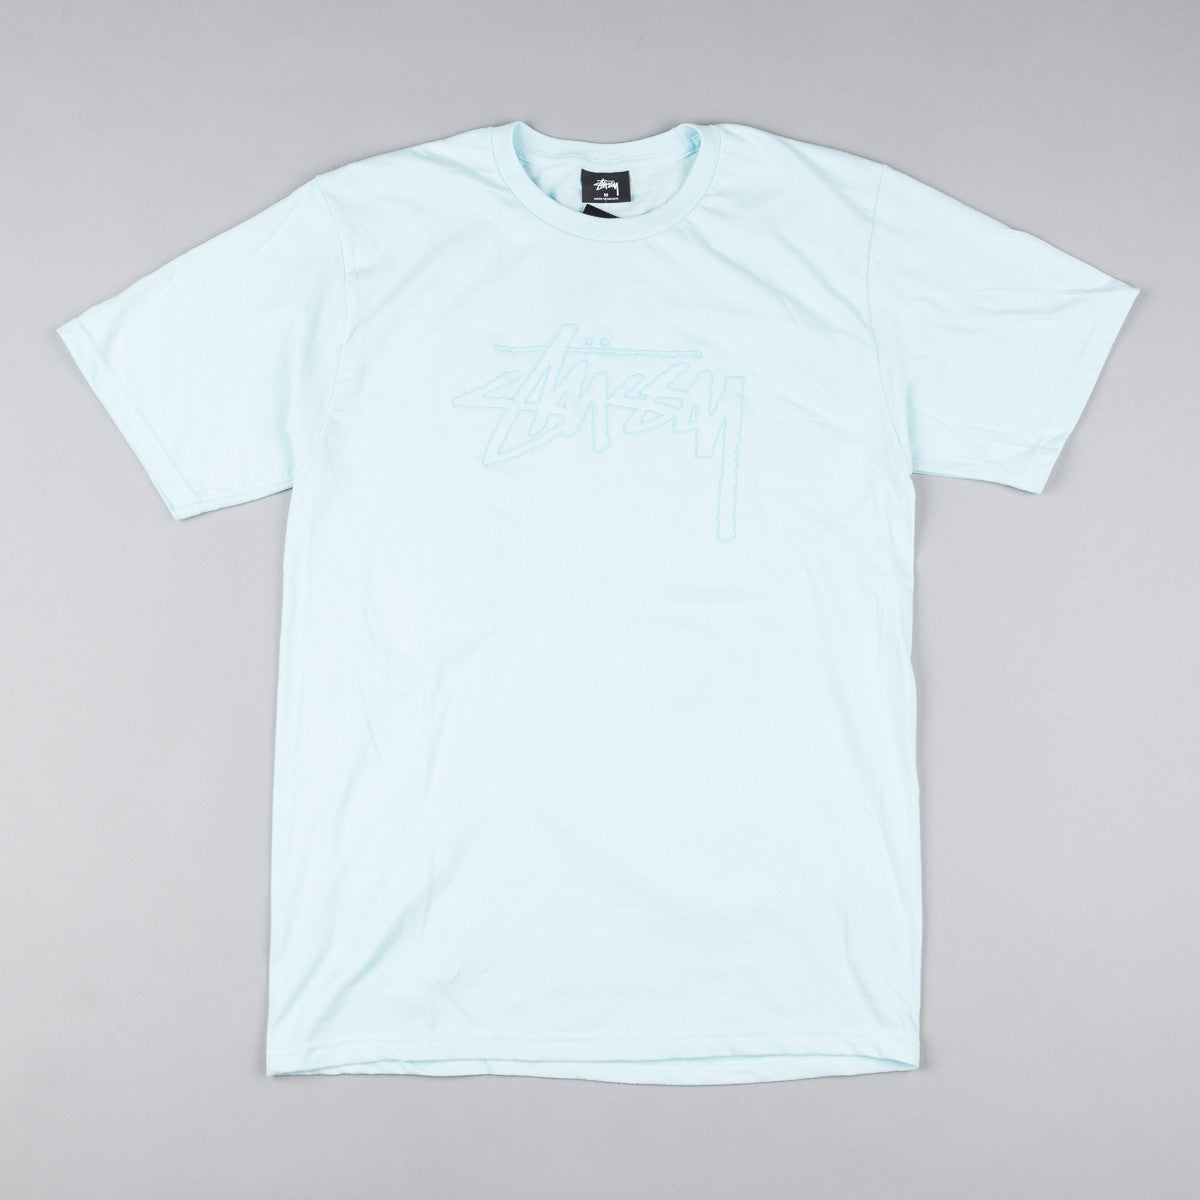 Stussy Stock Embroidered T-Shirt - Light Blue